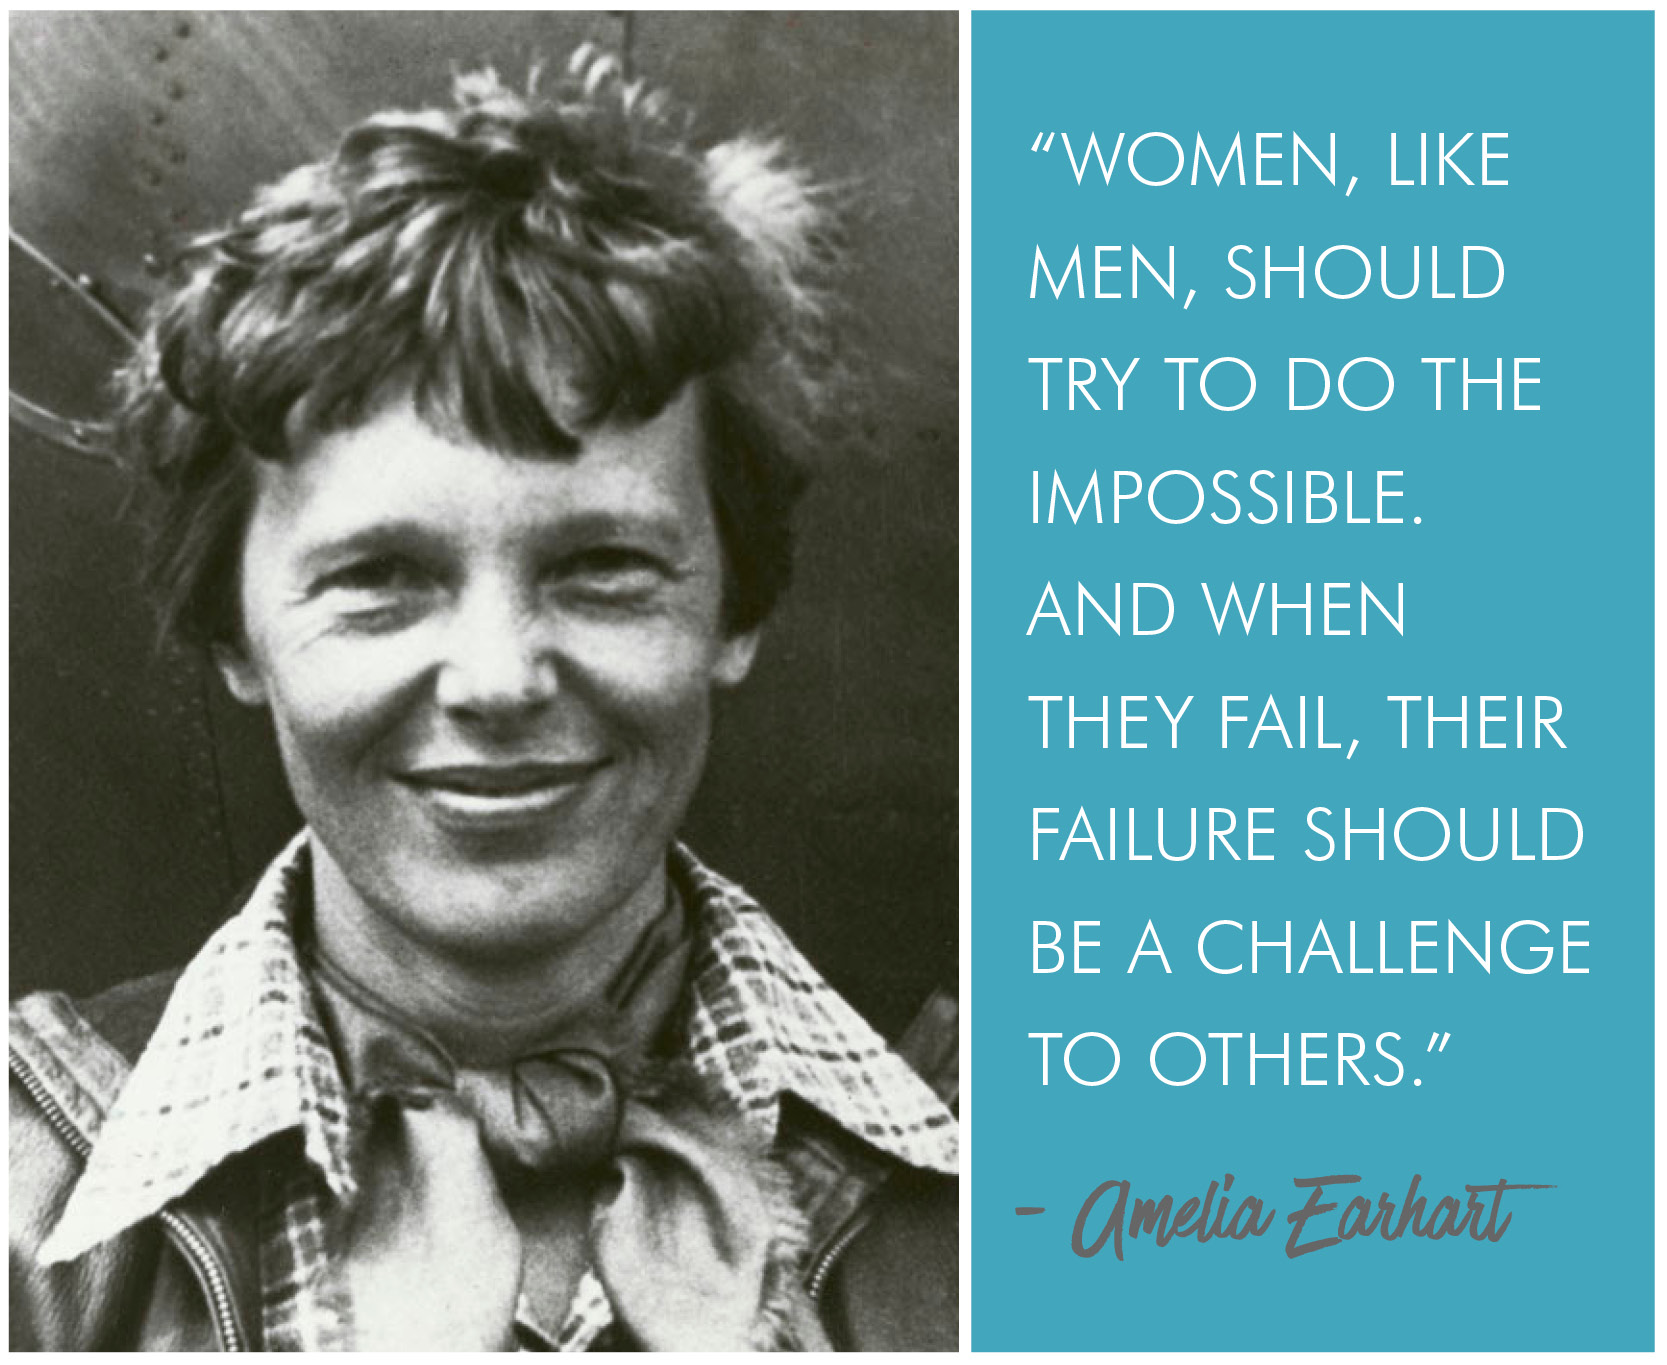 'Women, like men, should try to do the impossible. And when they fail, their failure should be a challenge to others.' - Amelia Earhart quote